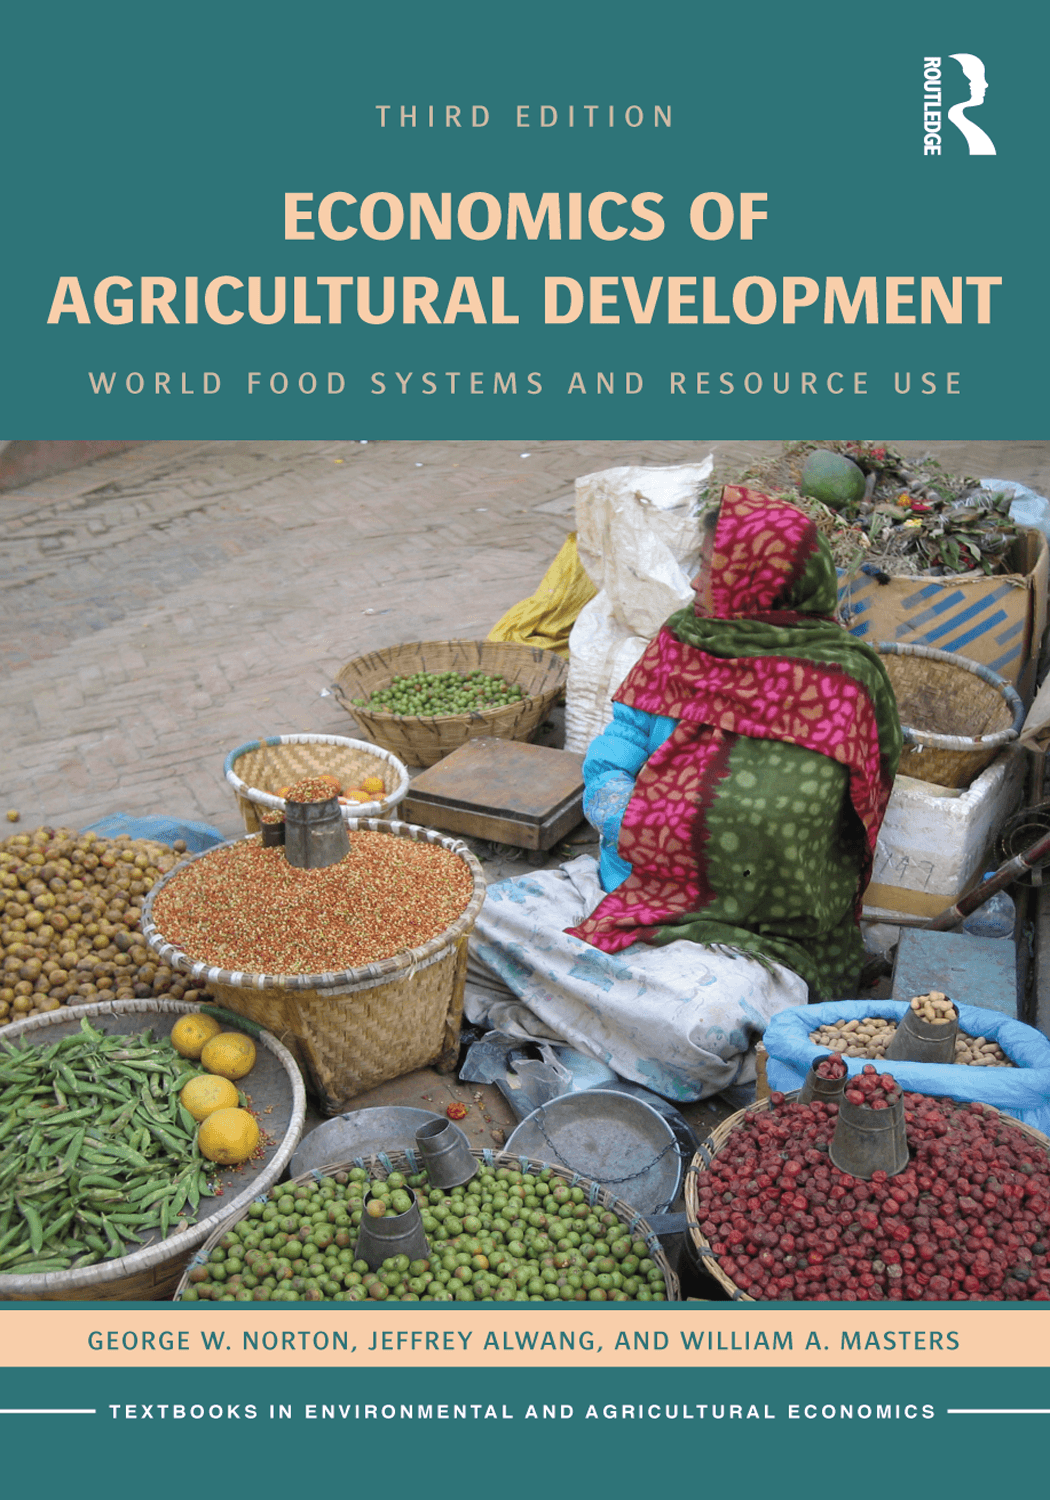 principles of agricultural economics Downloadable (with restrictions) no abstract is available for this item.